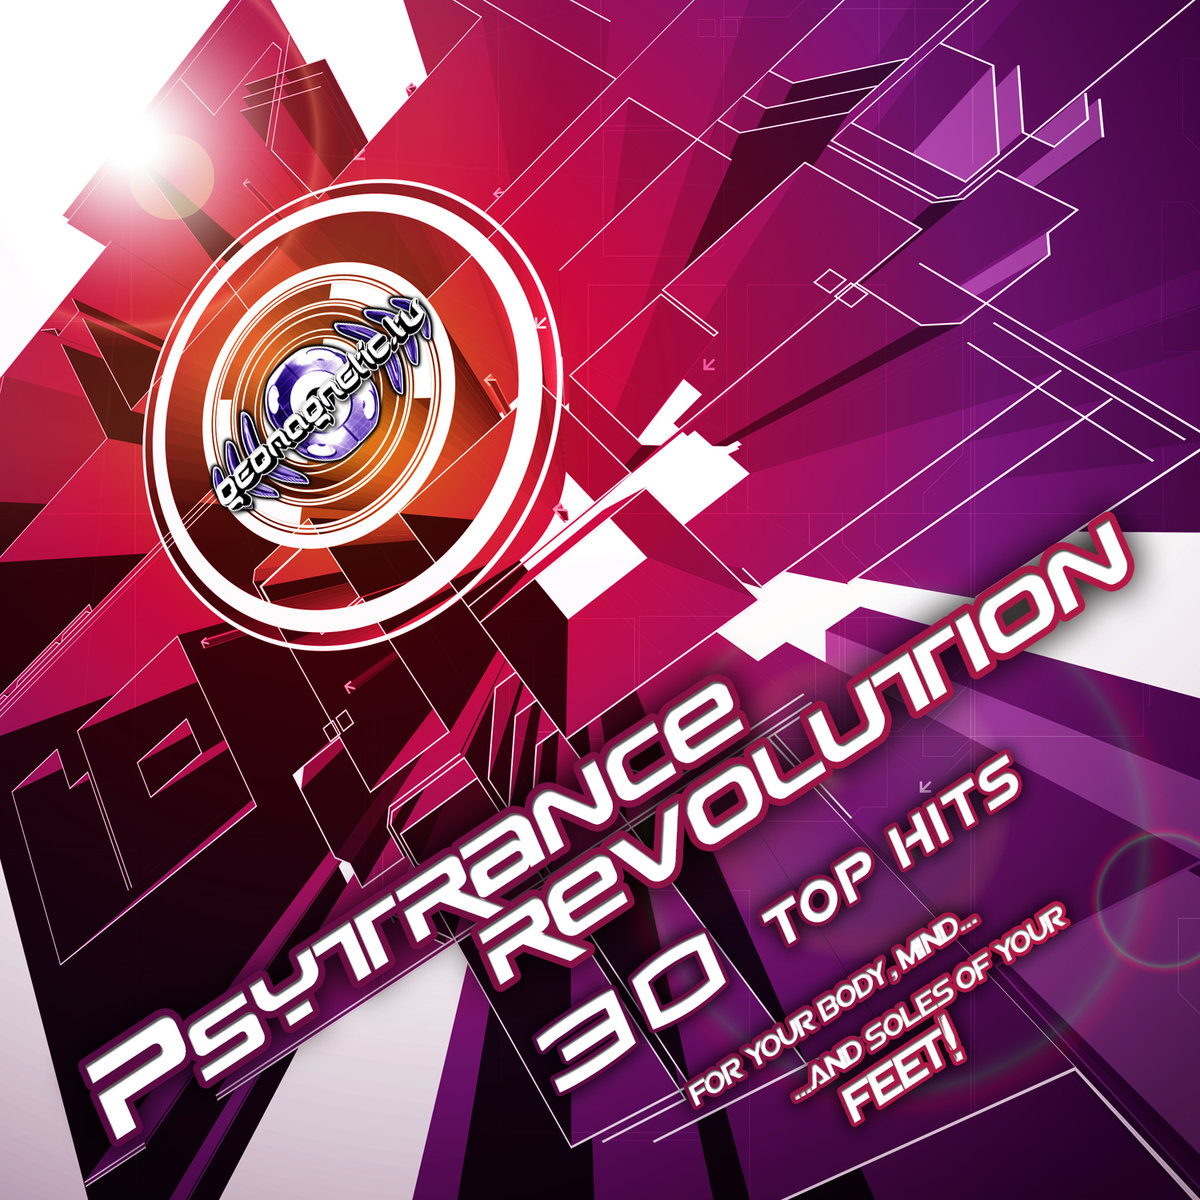 Virtual Emotions - In Pathway @ 'Various Artists - Psytrance Revolution (30 Top Hits)' album (electronic, goa)